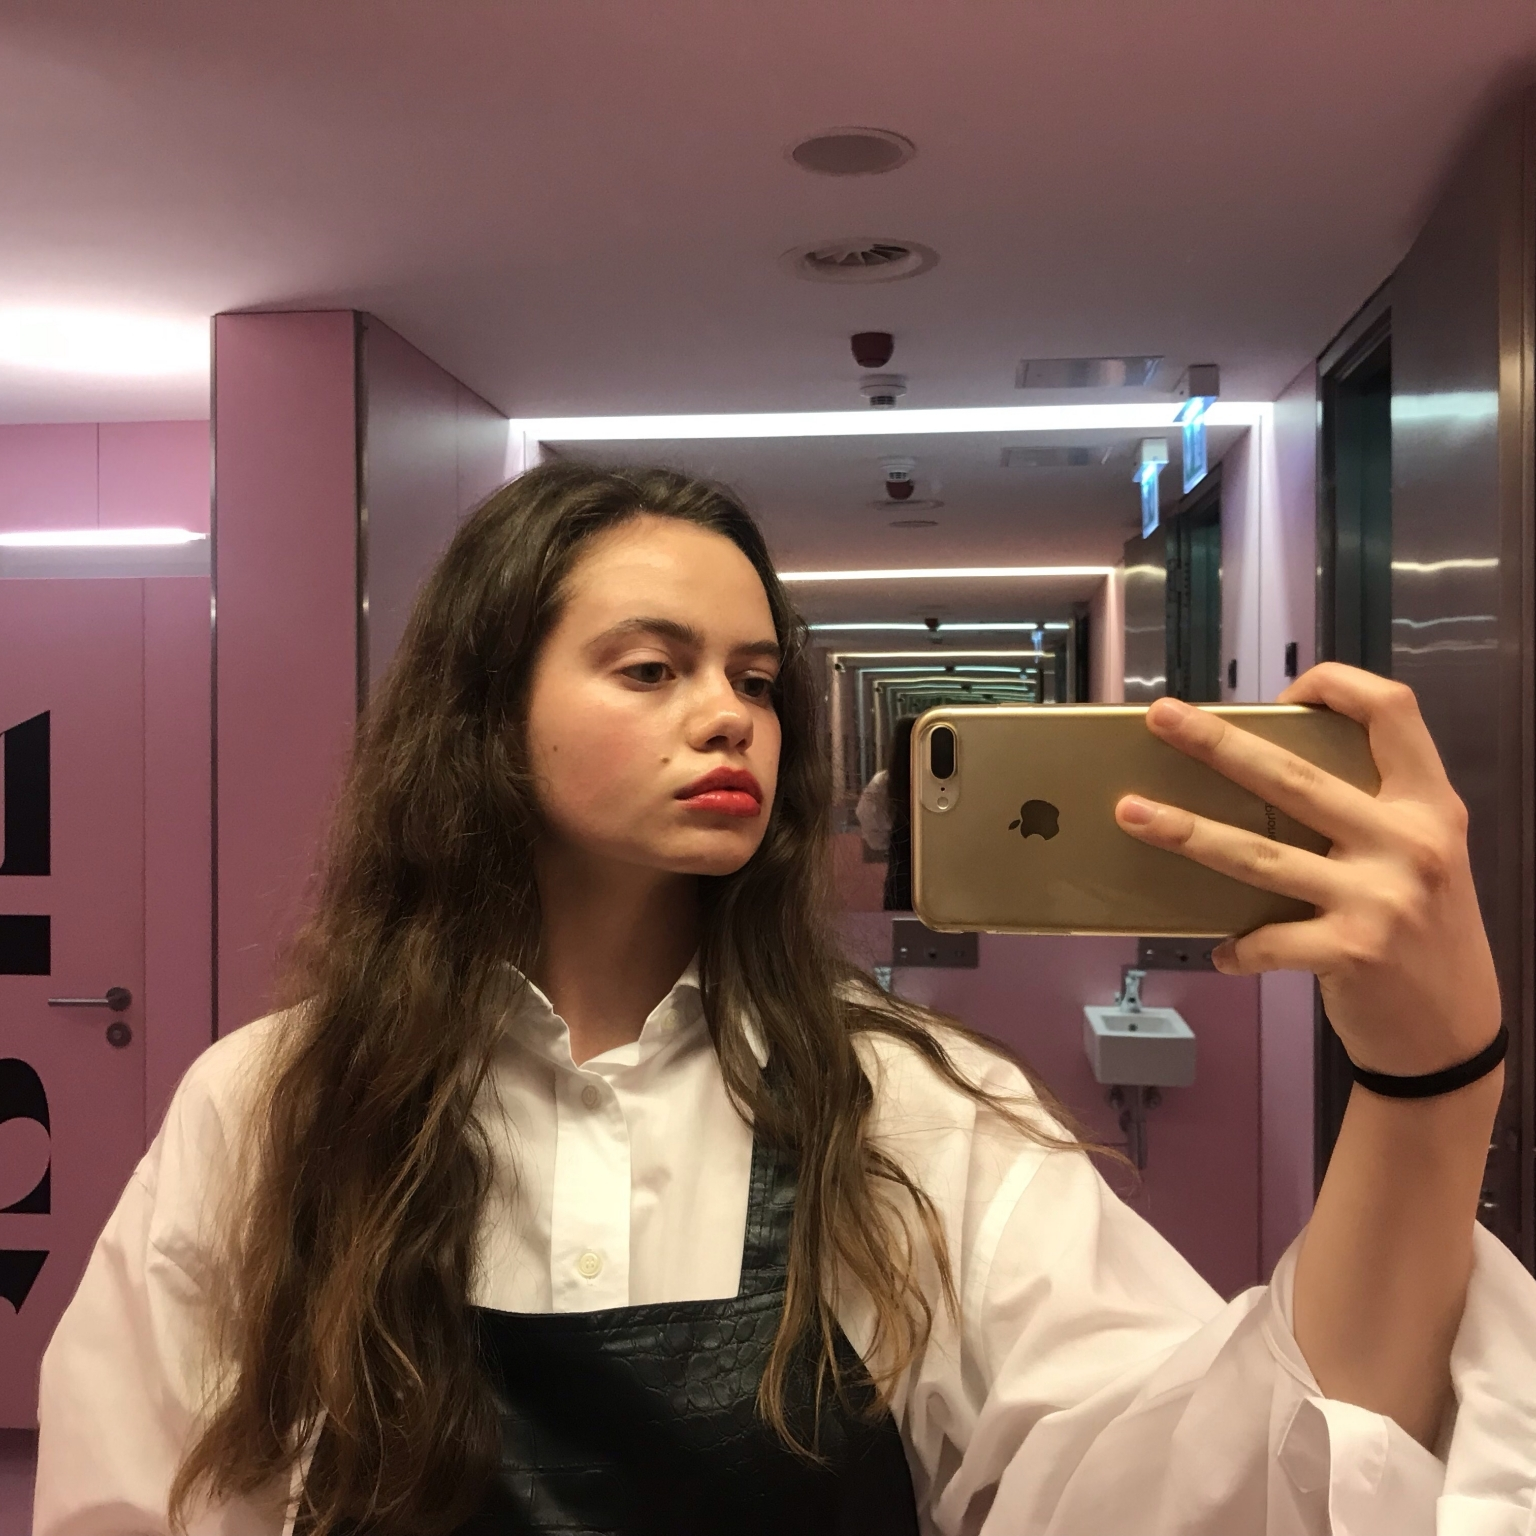 The Beauty Philosophy(s) Bella Michlo Lives By